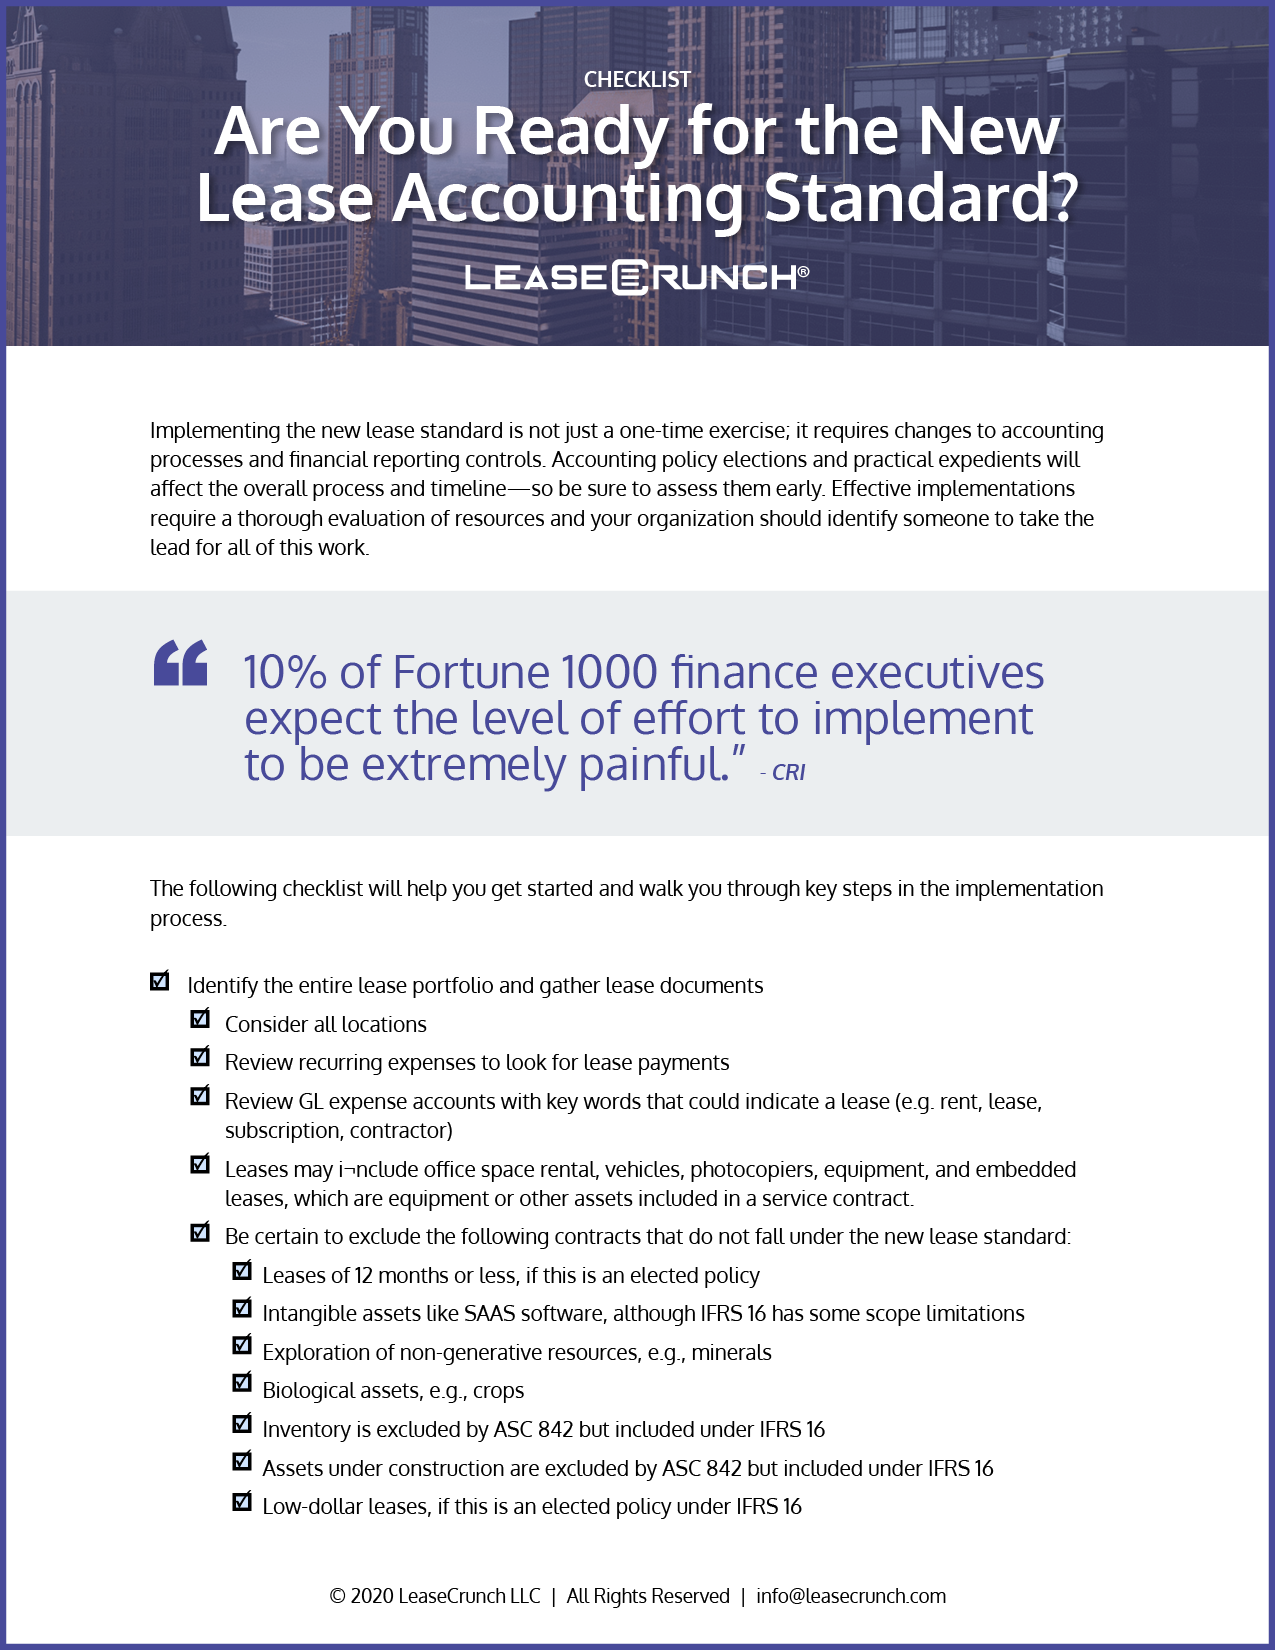 Are you ready for the new lease accounting standard?